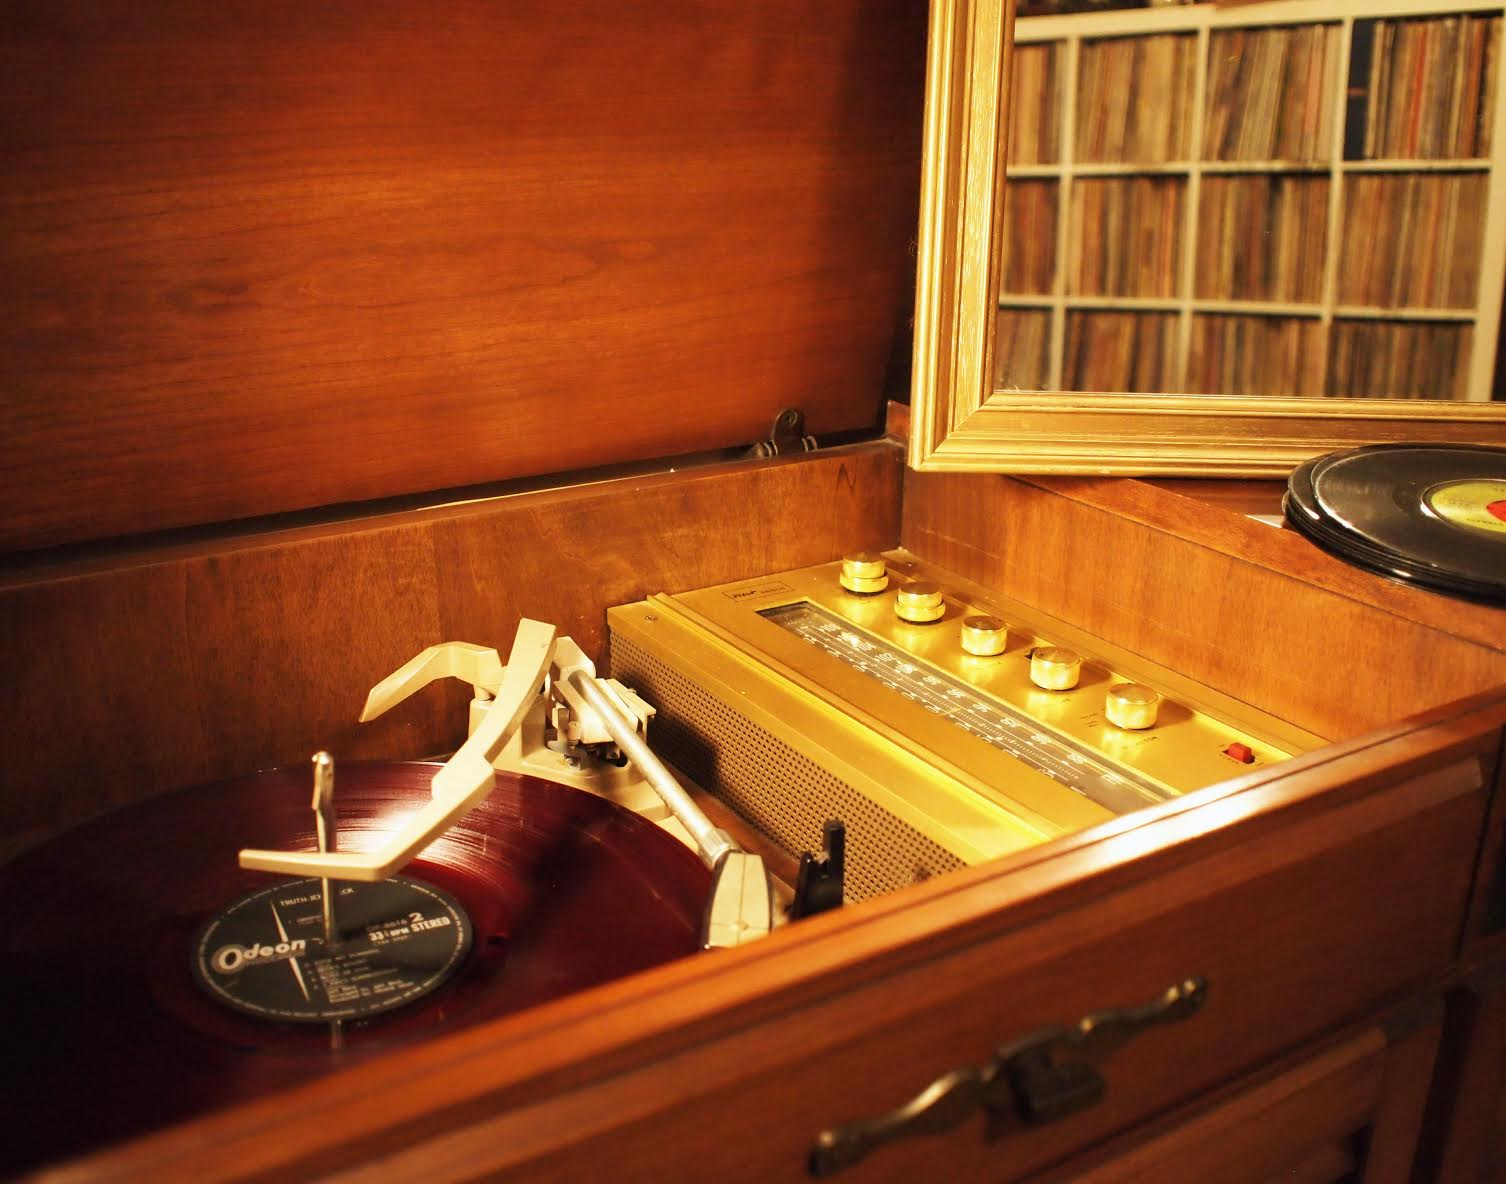 Brian Lee - spinning Jeff Beck on the console which belonged to his grandmother.